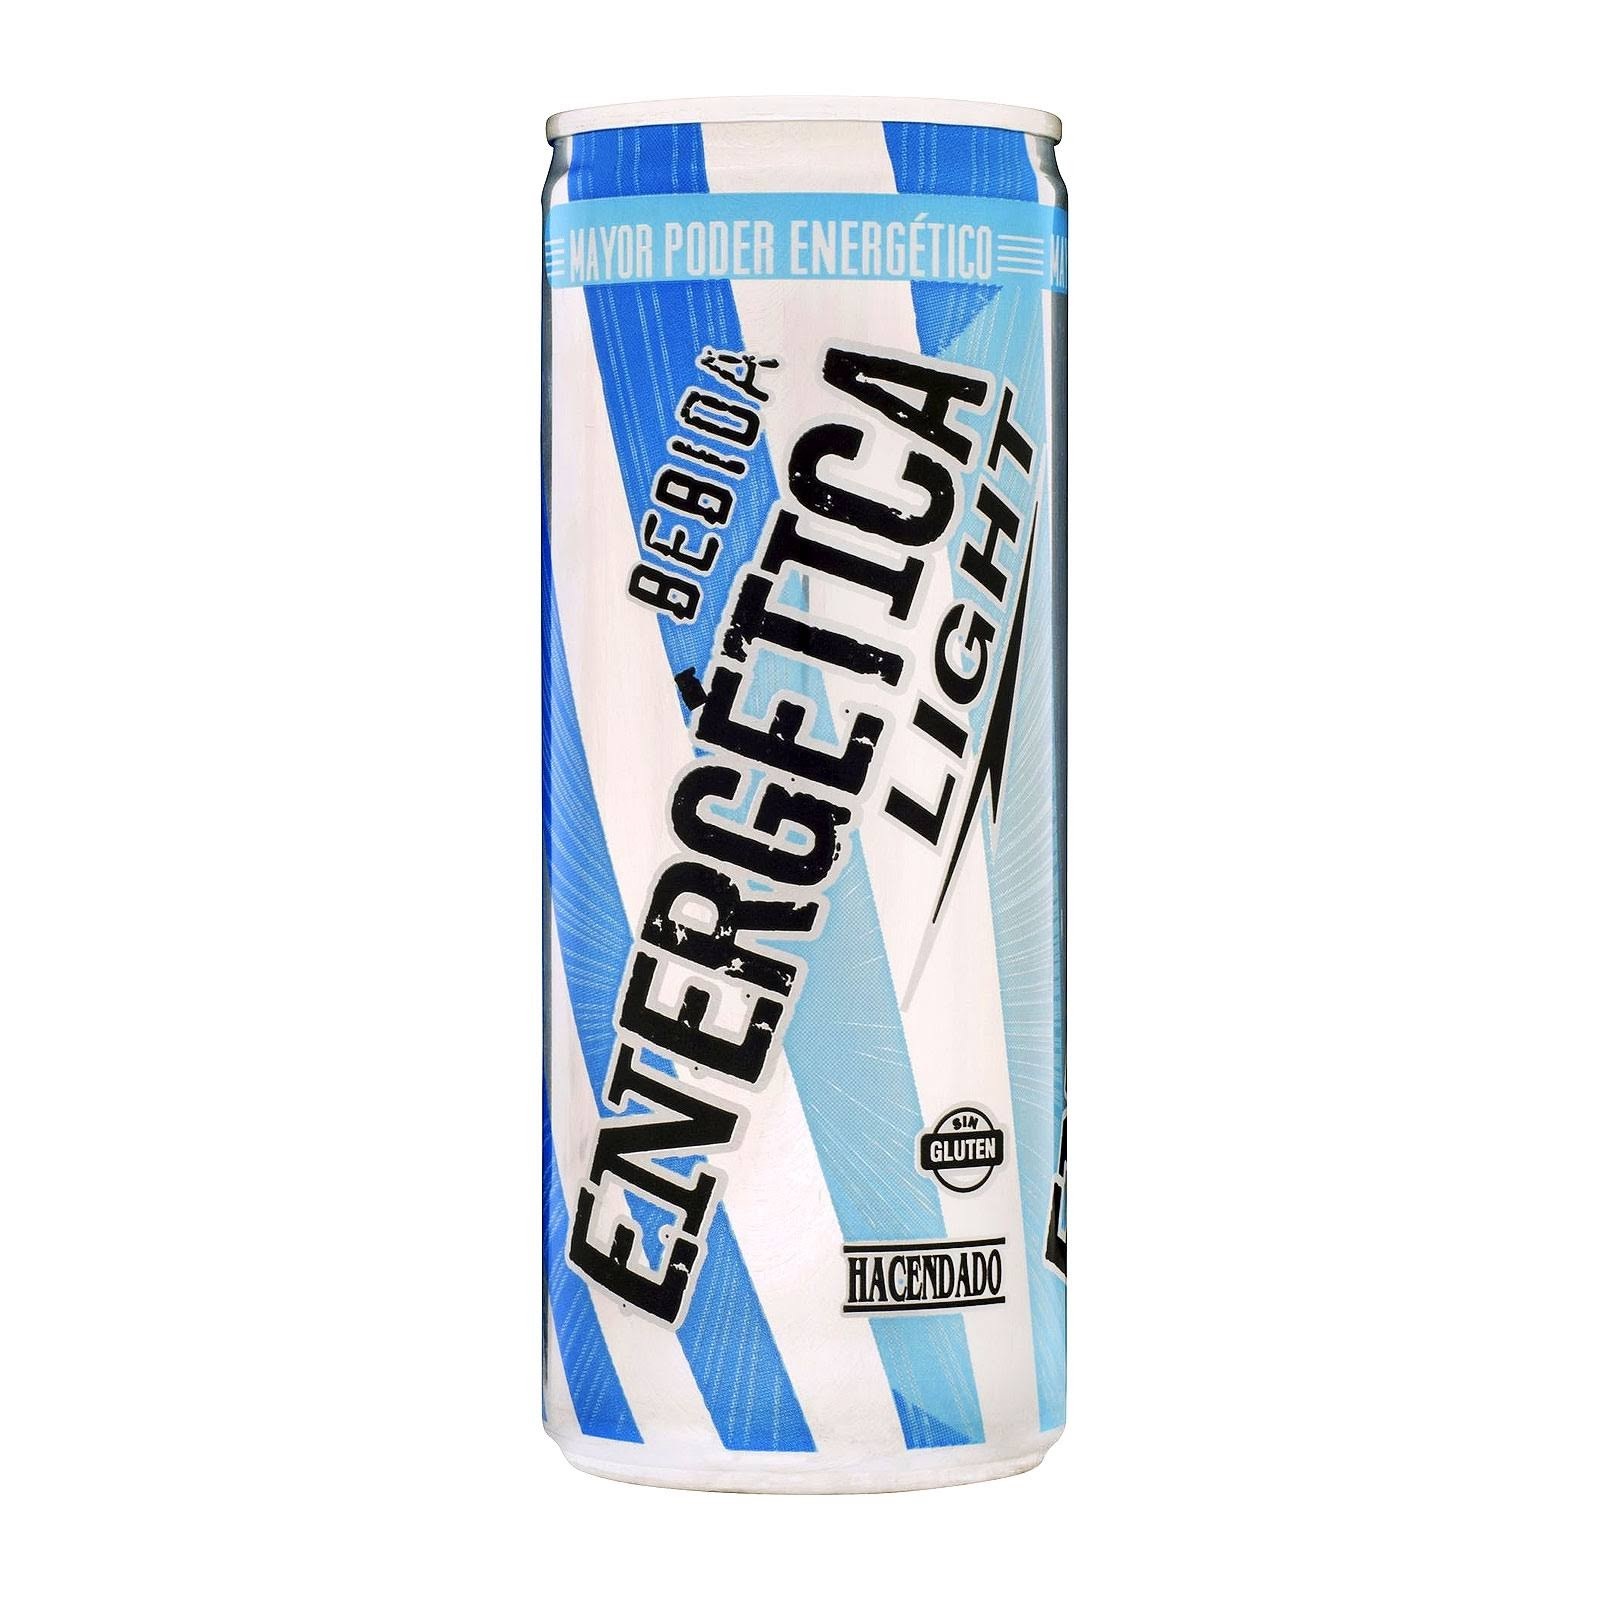 Bebida energética Energy Drink light Hacendado